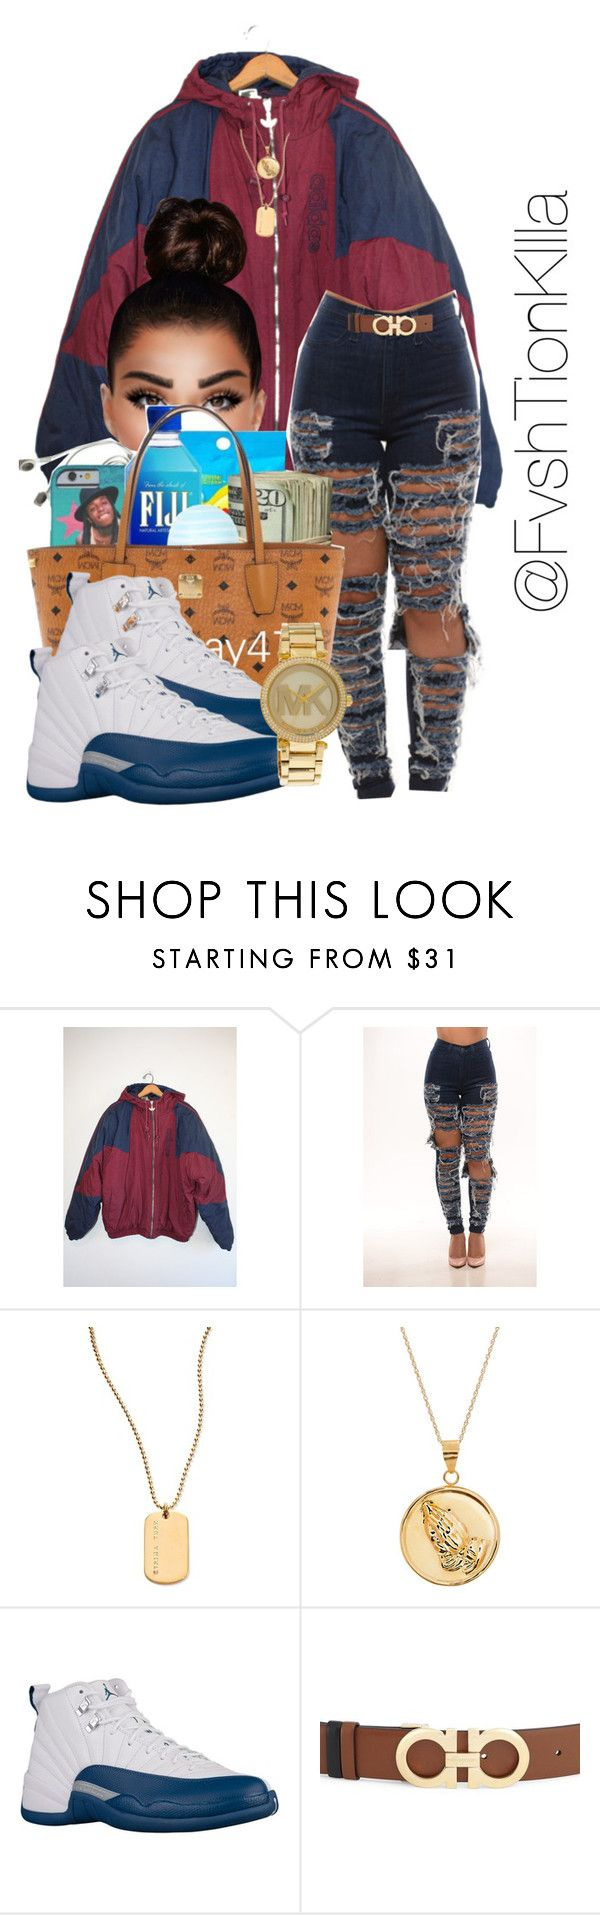 """""""Chance the rapper~Mixtape"""" by fvshtionkilla ❤ liked on Polyvore featuring adidas, Trina Turk, Salvatore Ferragamo and Michael Kors"""